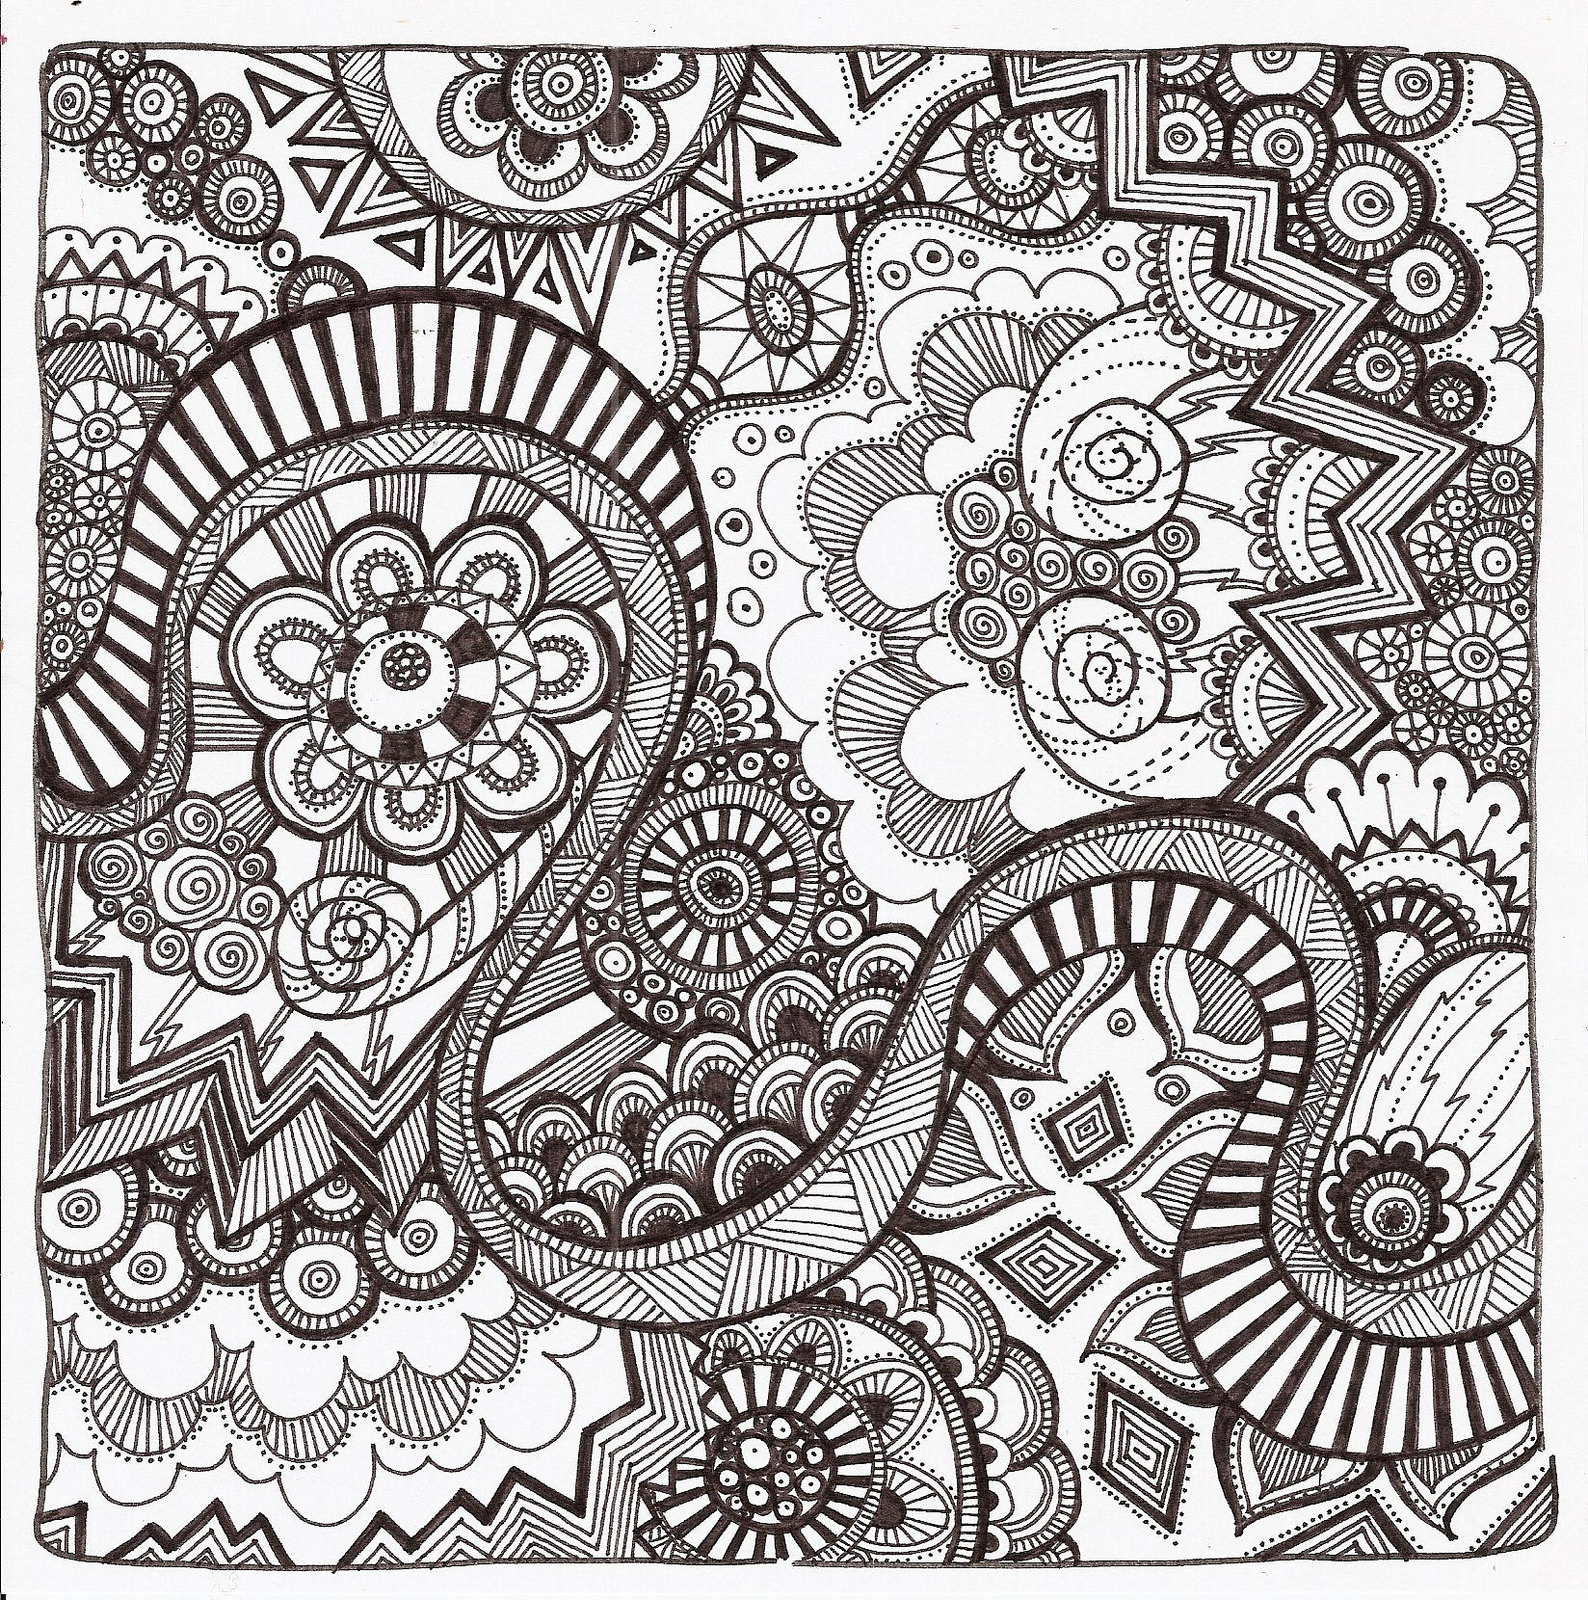 Coloring pages for adults zentangle - Free Printable Zentangle Coloring Pages For Adults